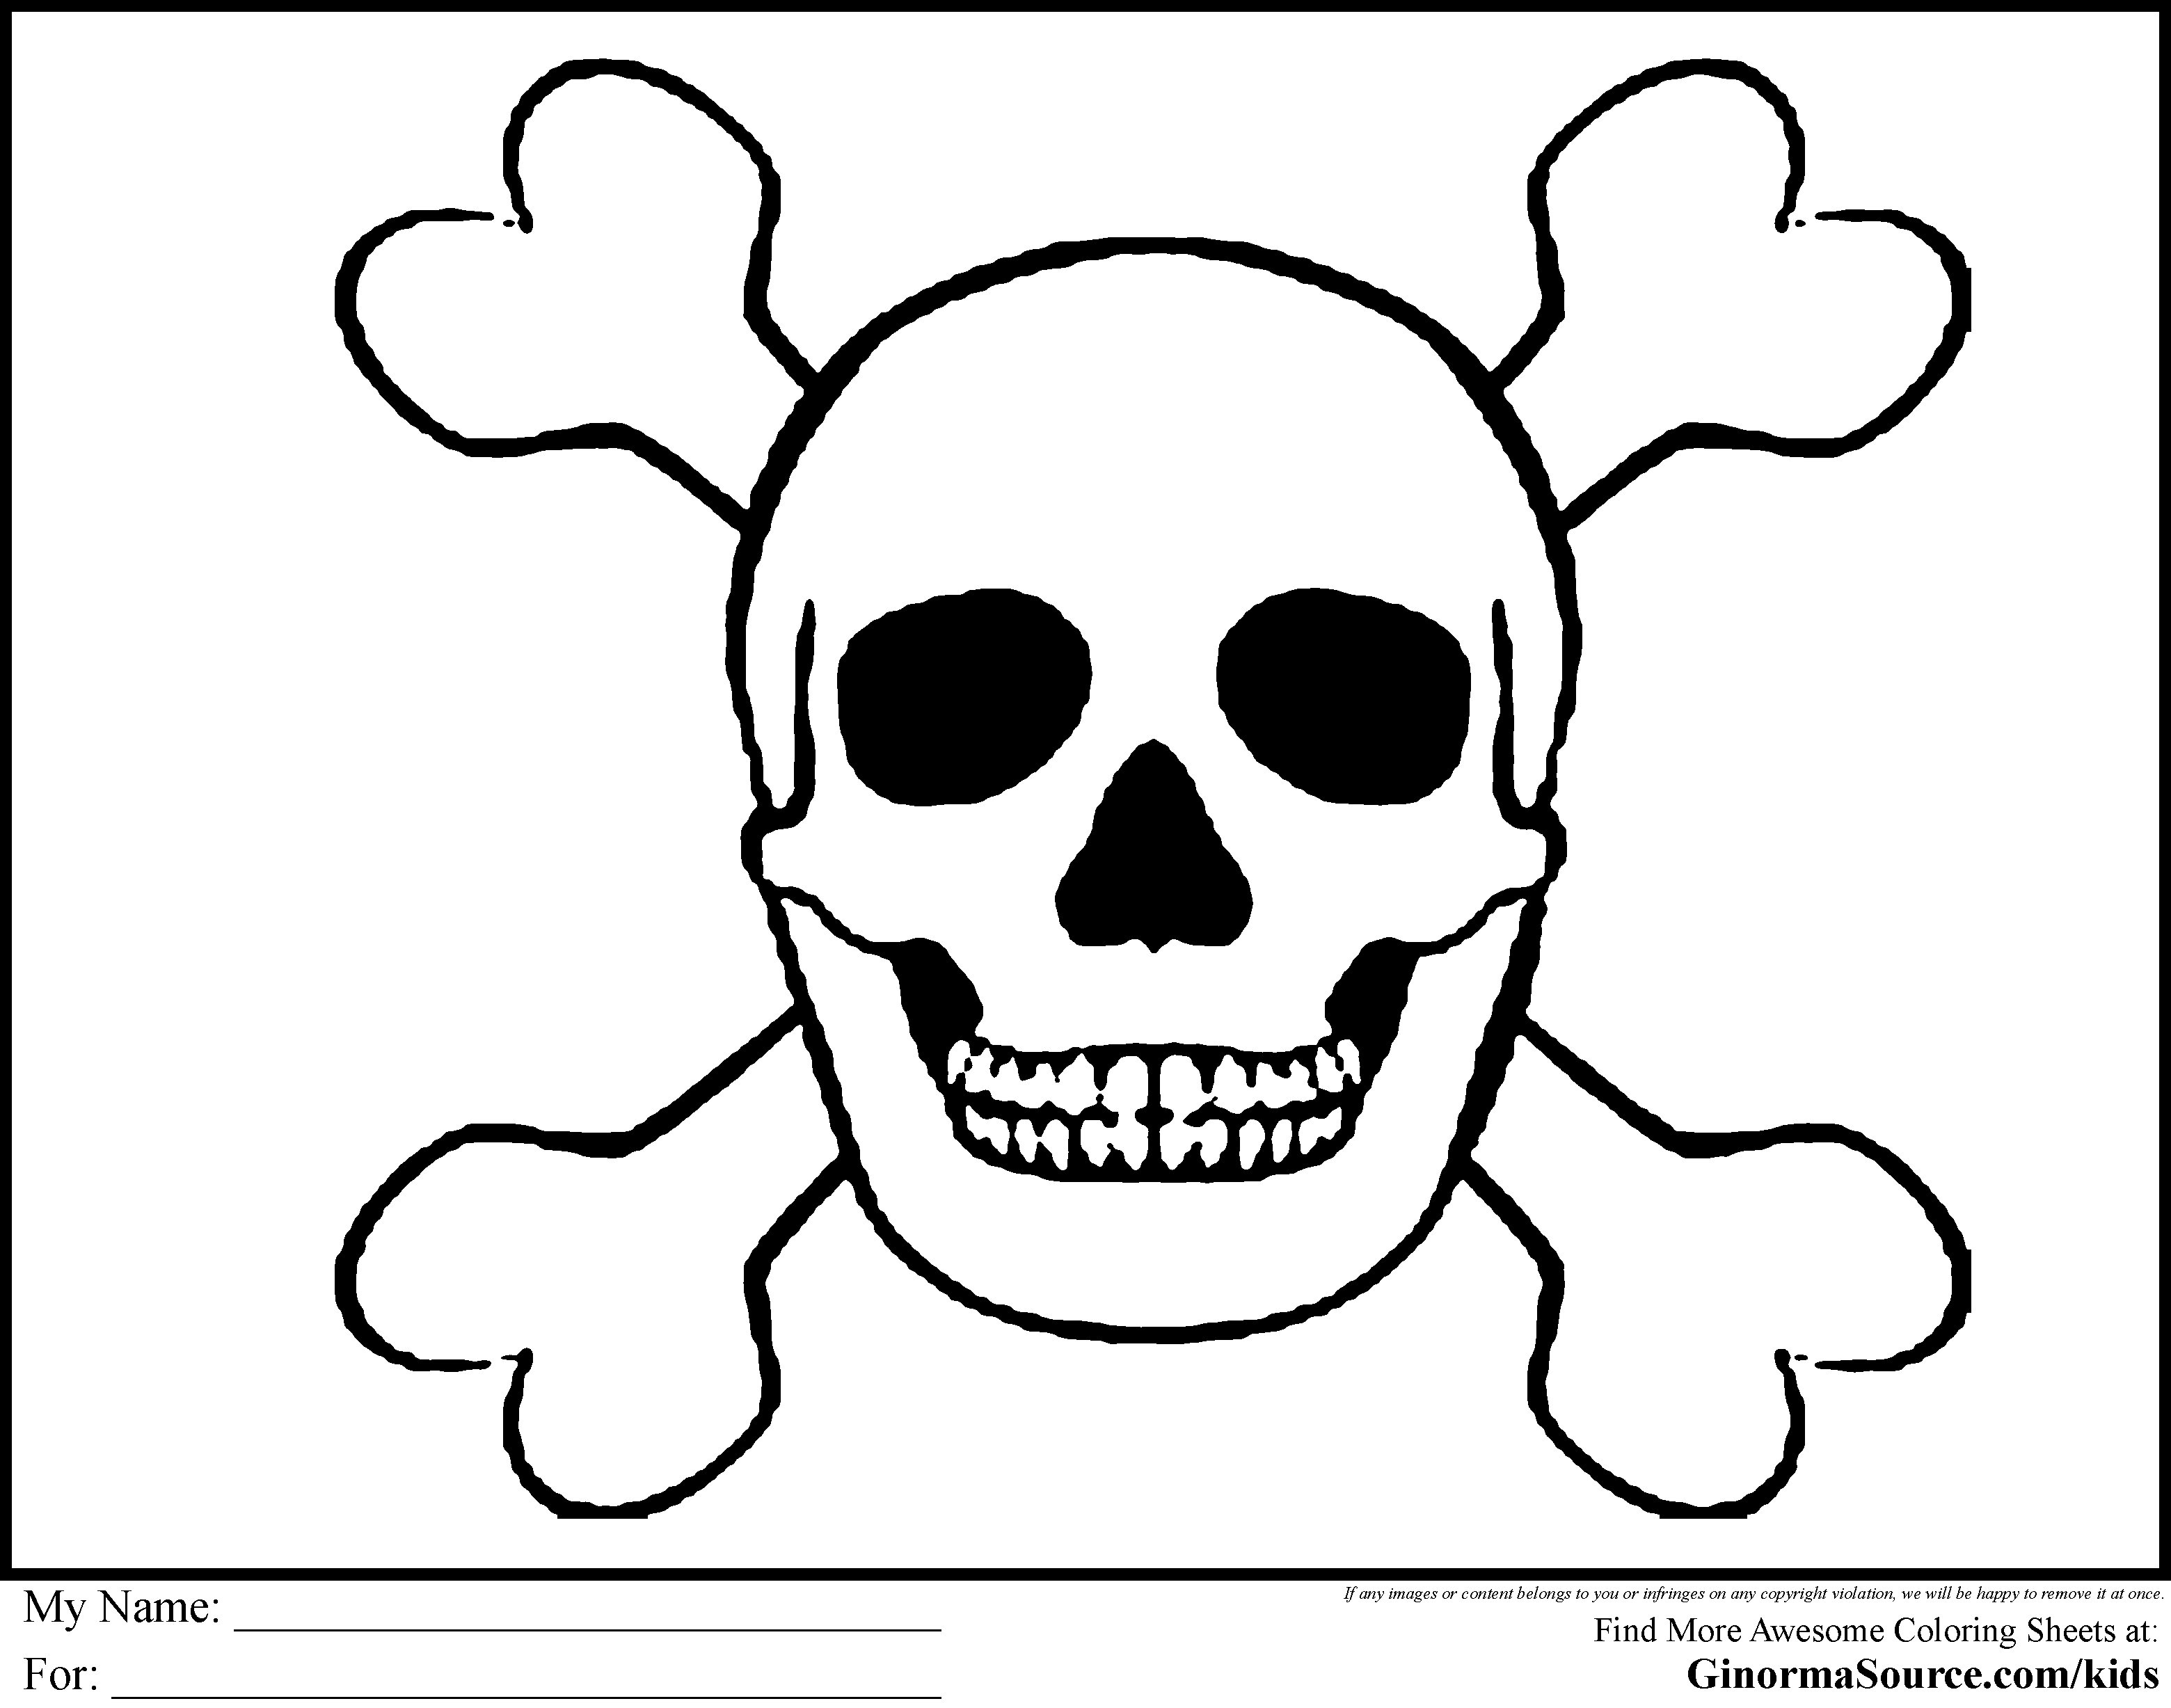 Pirate Skull Drawings: Pirate Drawings, Pirate Skull And